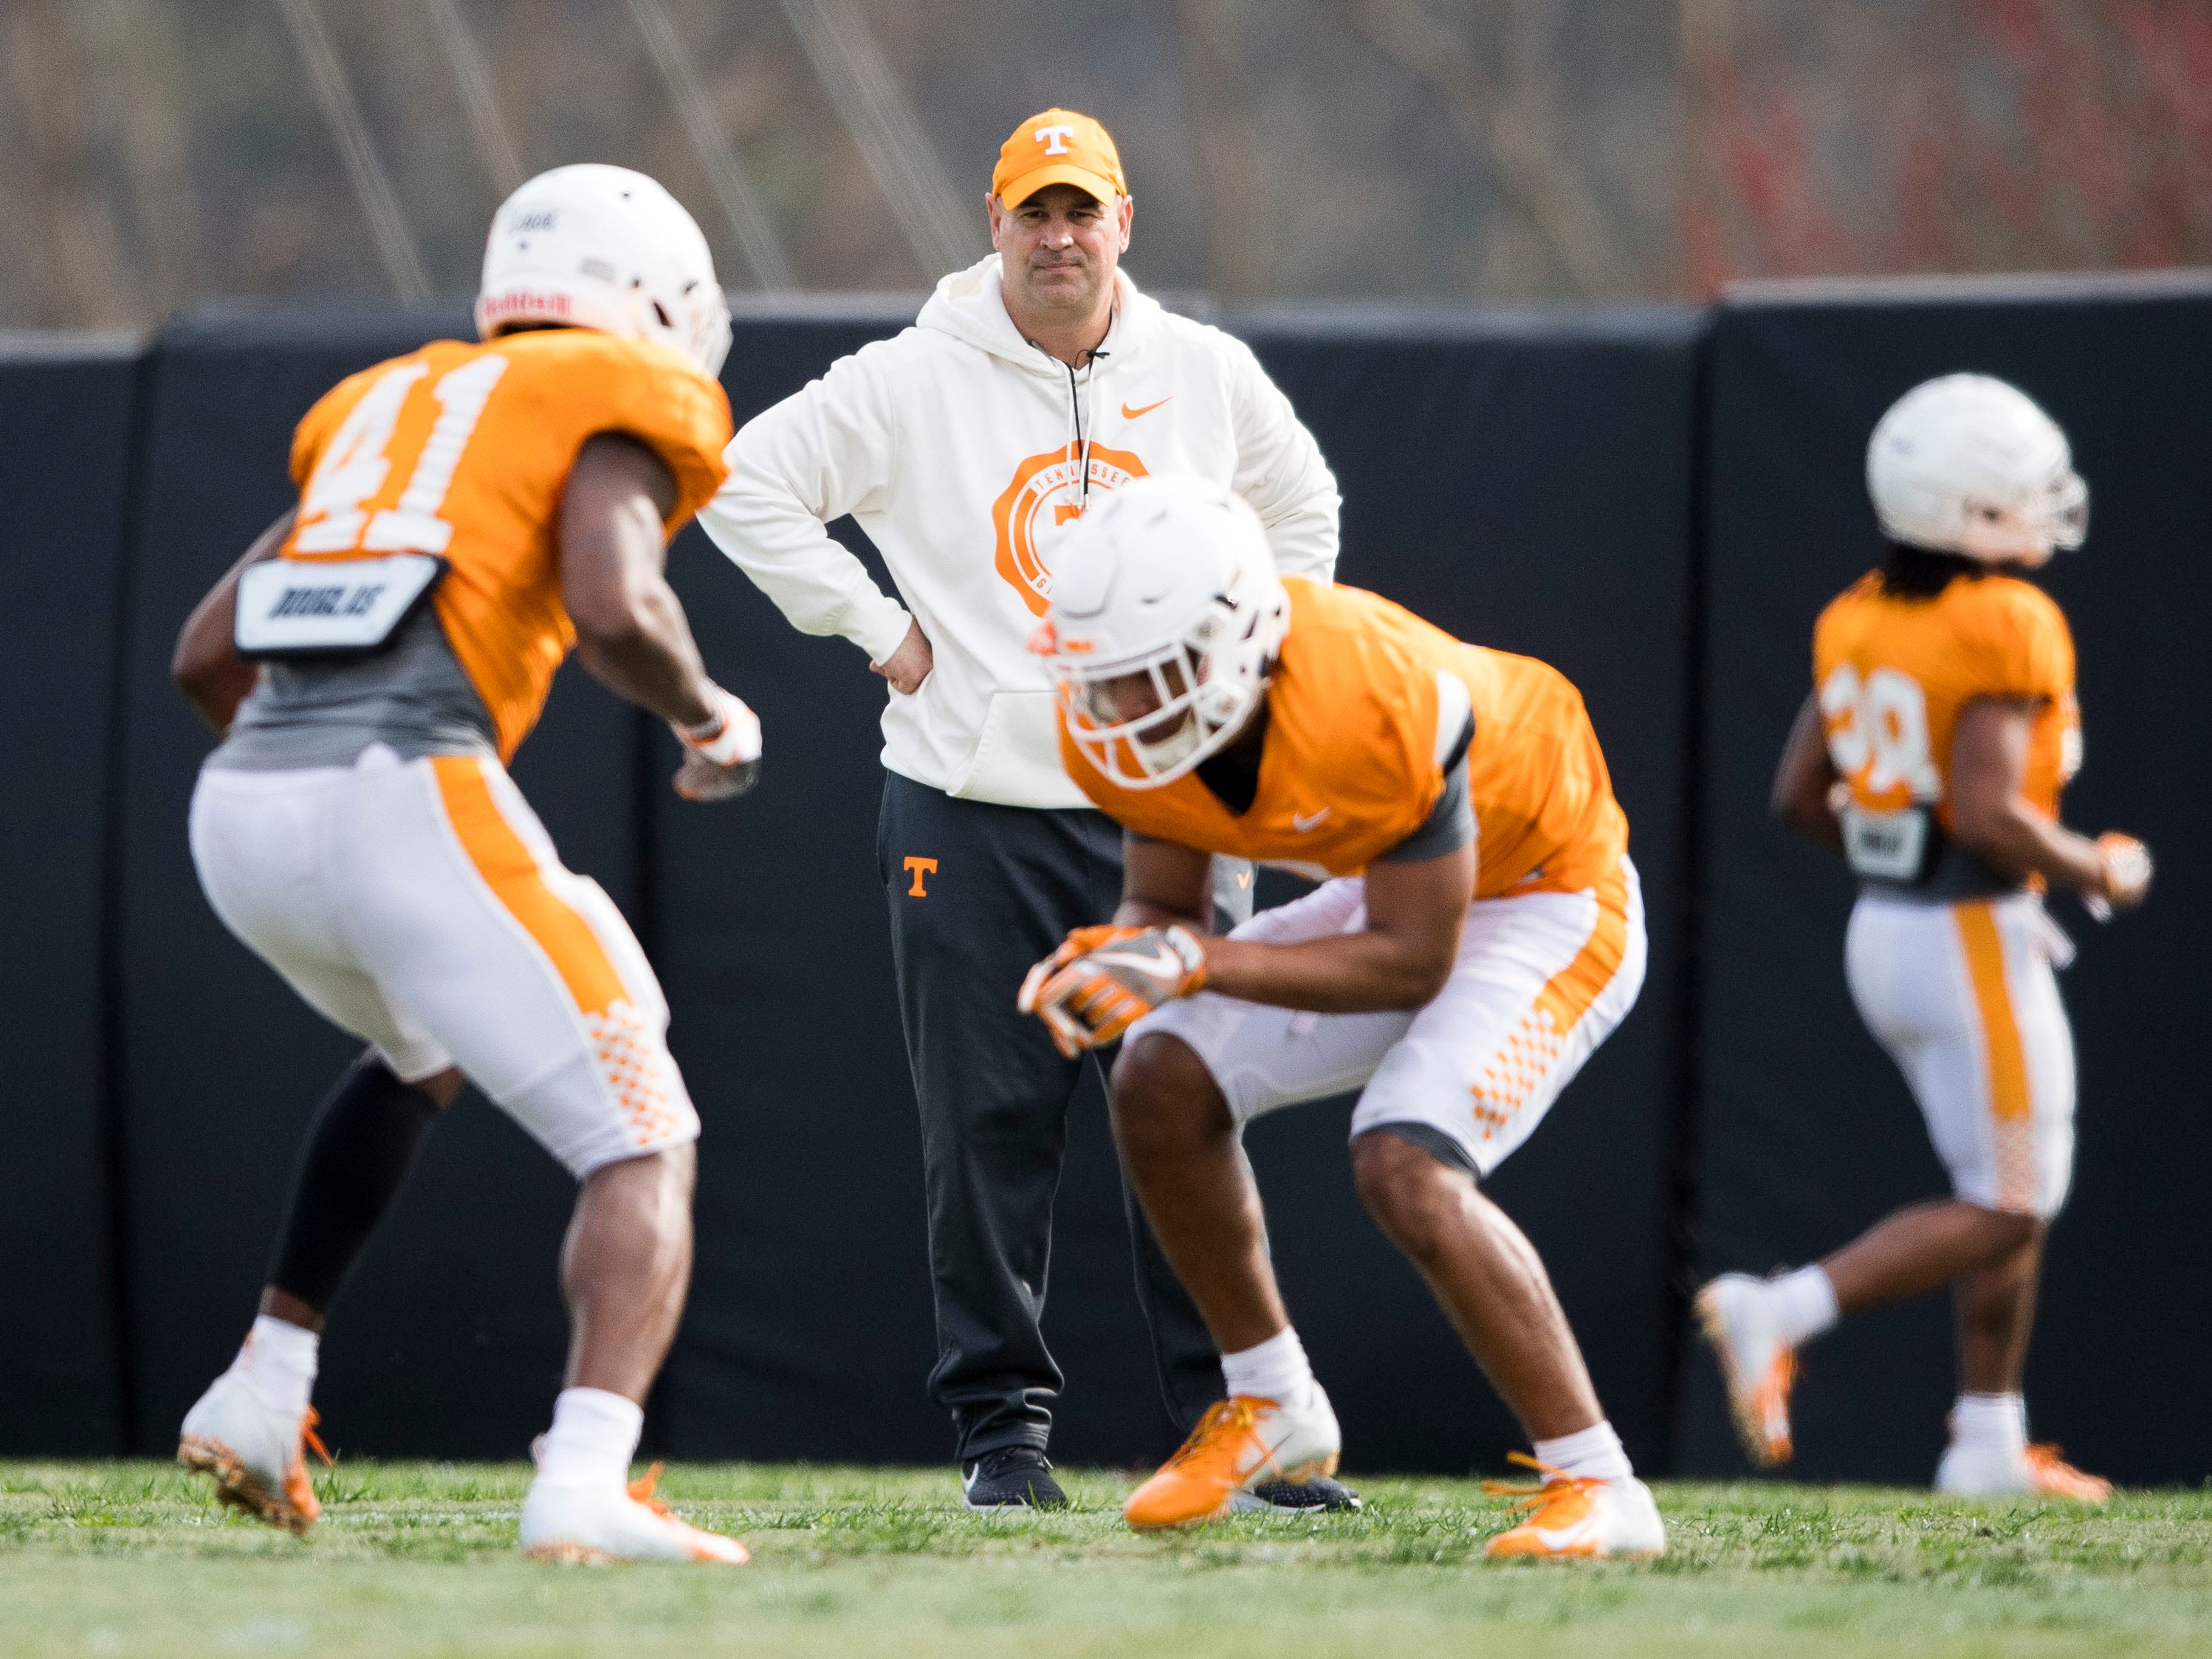 Tennessee head coach Jeremy Pruitt watches the defensive backs during Tennessee's afternoon football practice on Monday, March 11, 2019.